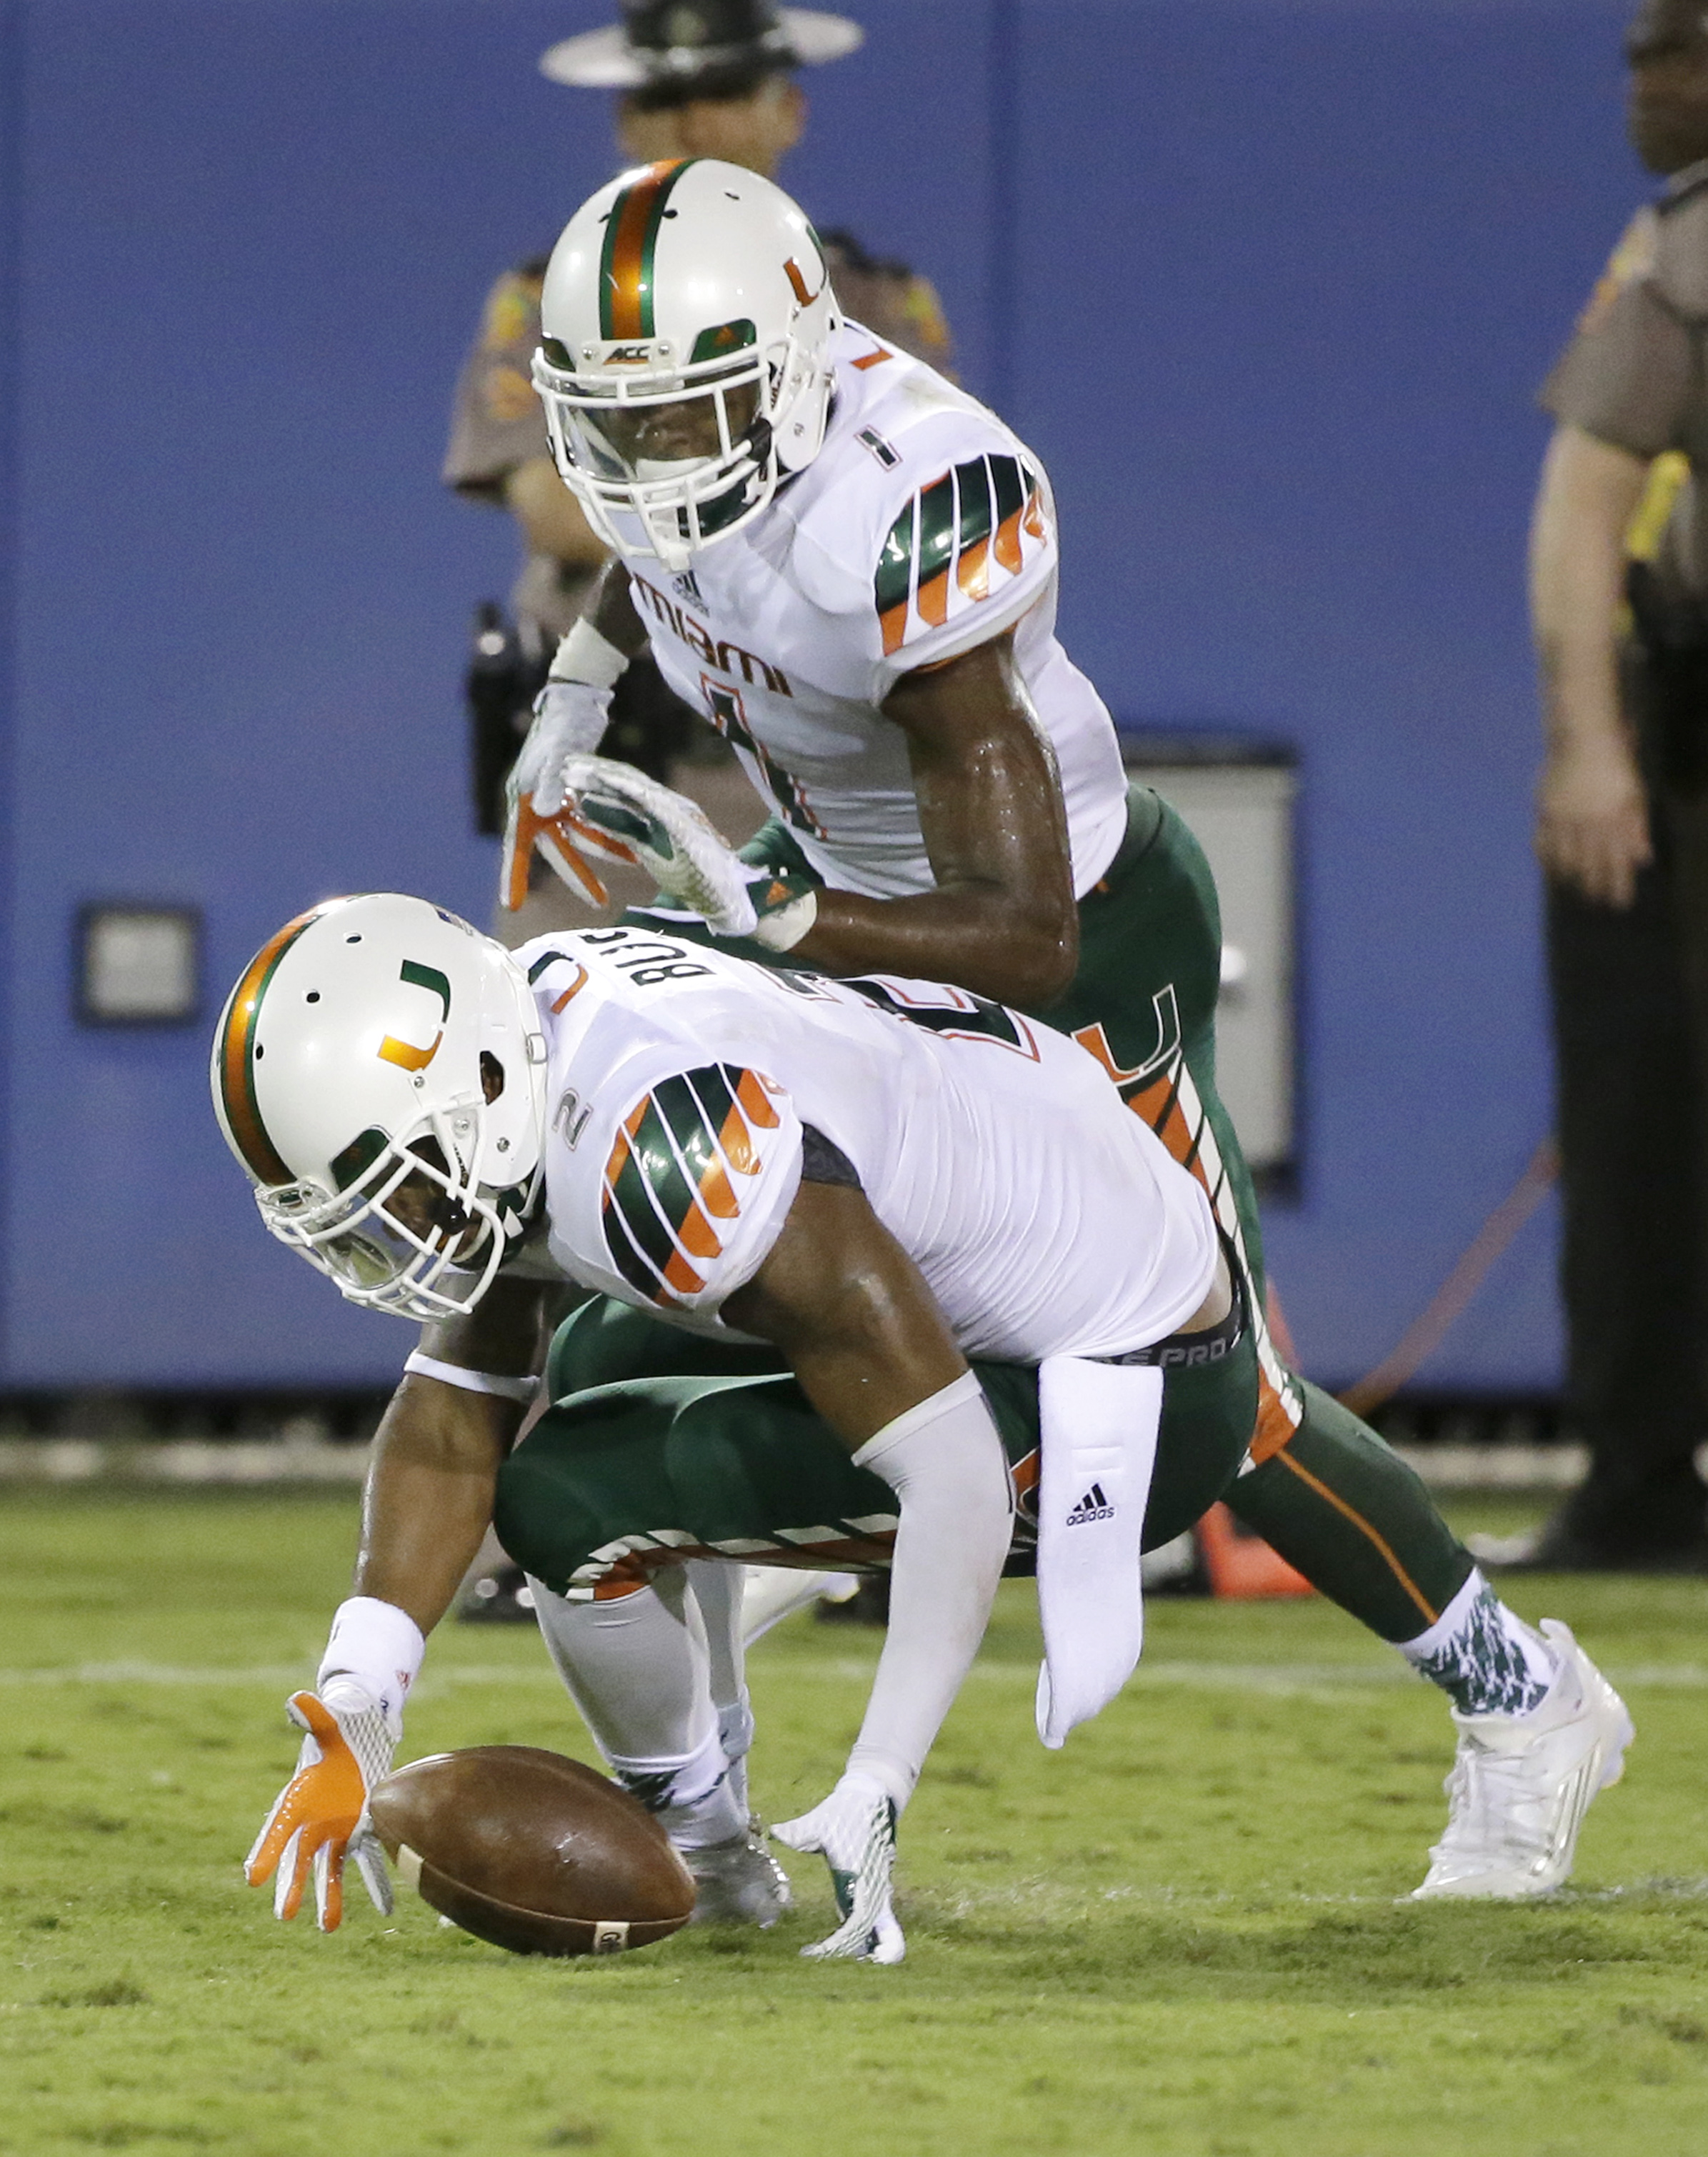 Miami defensive back Deon Bush, foreground, recovers a fumble by Florida Atlantic wide receiver Jenson Stoshak during the first half of an NCAA college football game, Friday, Sept. 11, 2015, in Boca Raton, Fla. Defensive back Artie Burns is at rear. (AP P